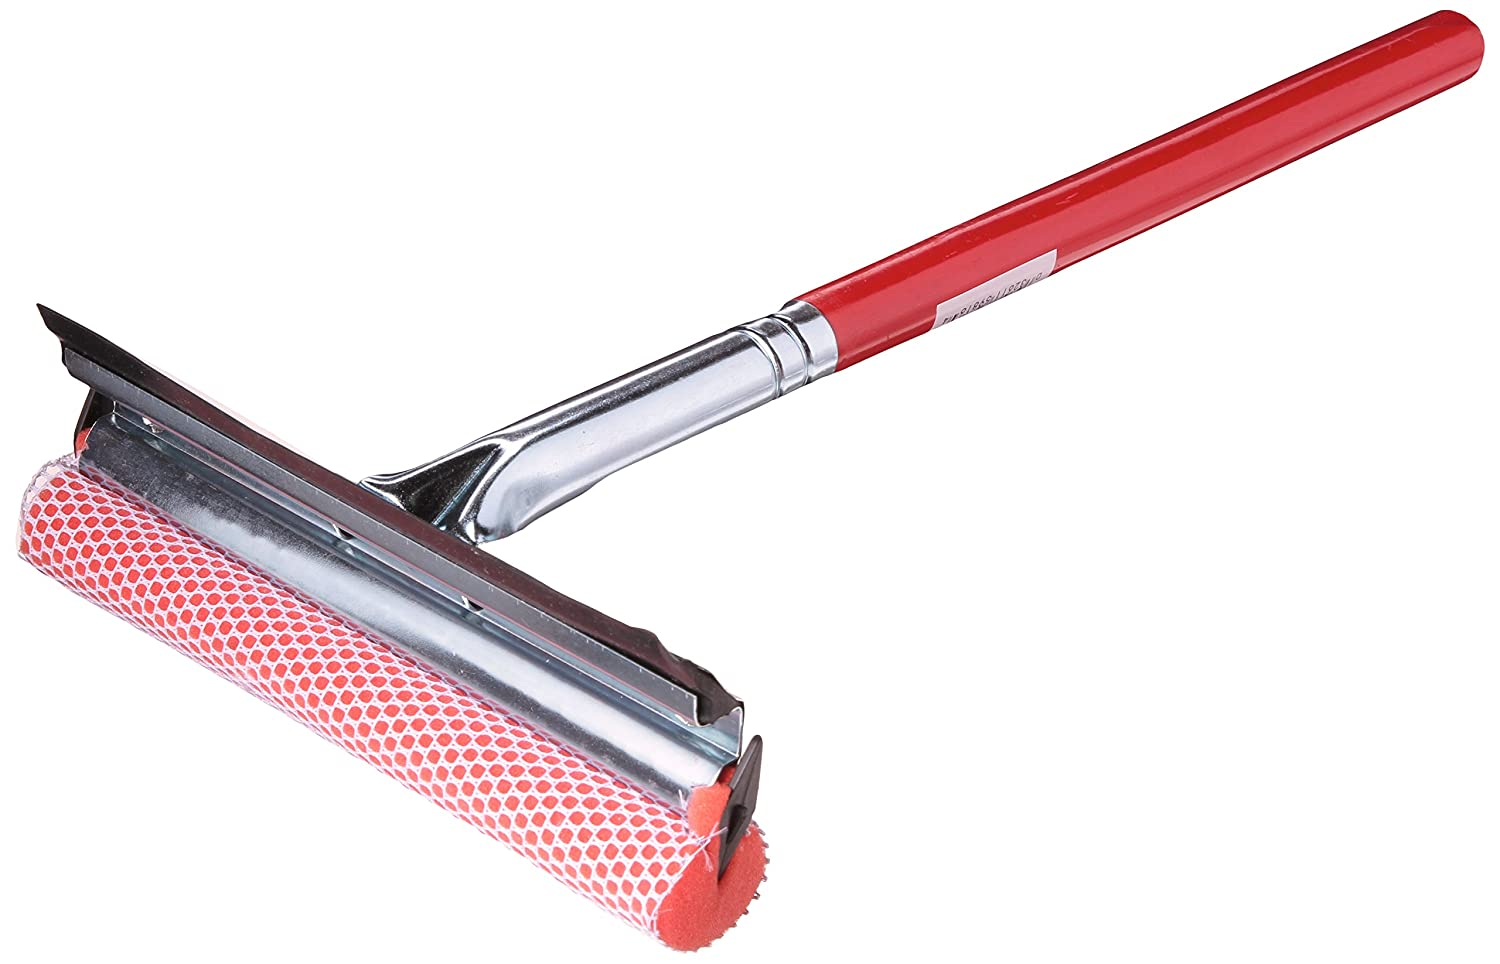 все цены на  Ettore 59816 Auto Squeegee Scrubber with 16-Inch Handle  в интернете